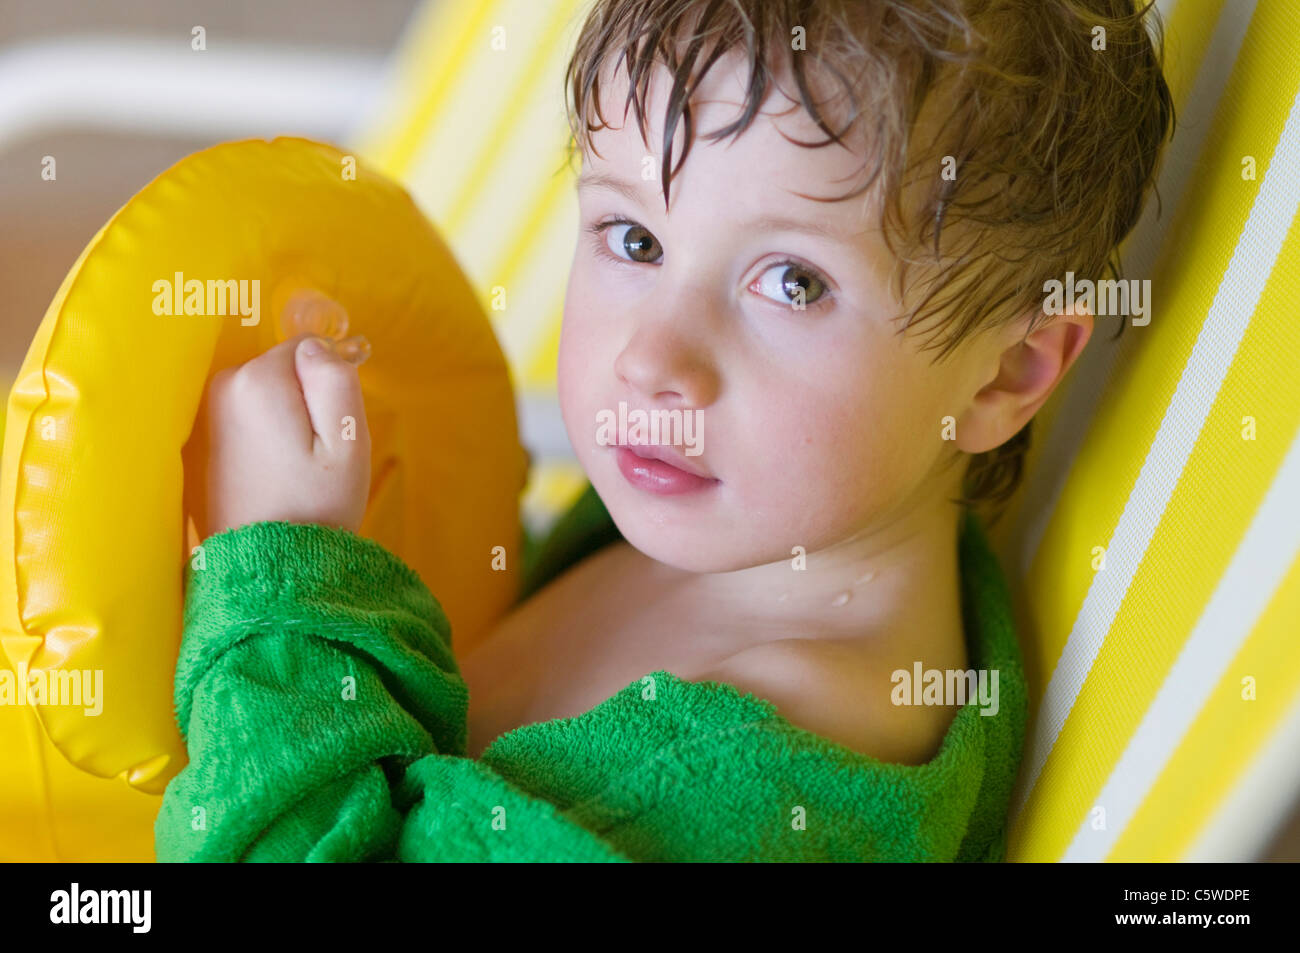 Germany, Baden-Württemberg, Boy (4-5) sitting on chair in indoor swimming pool, portrait - Stock Image